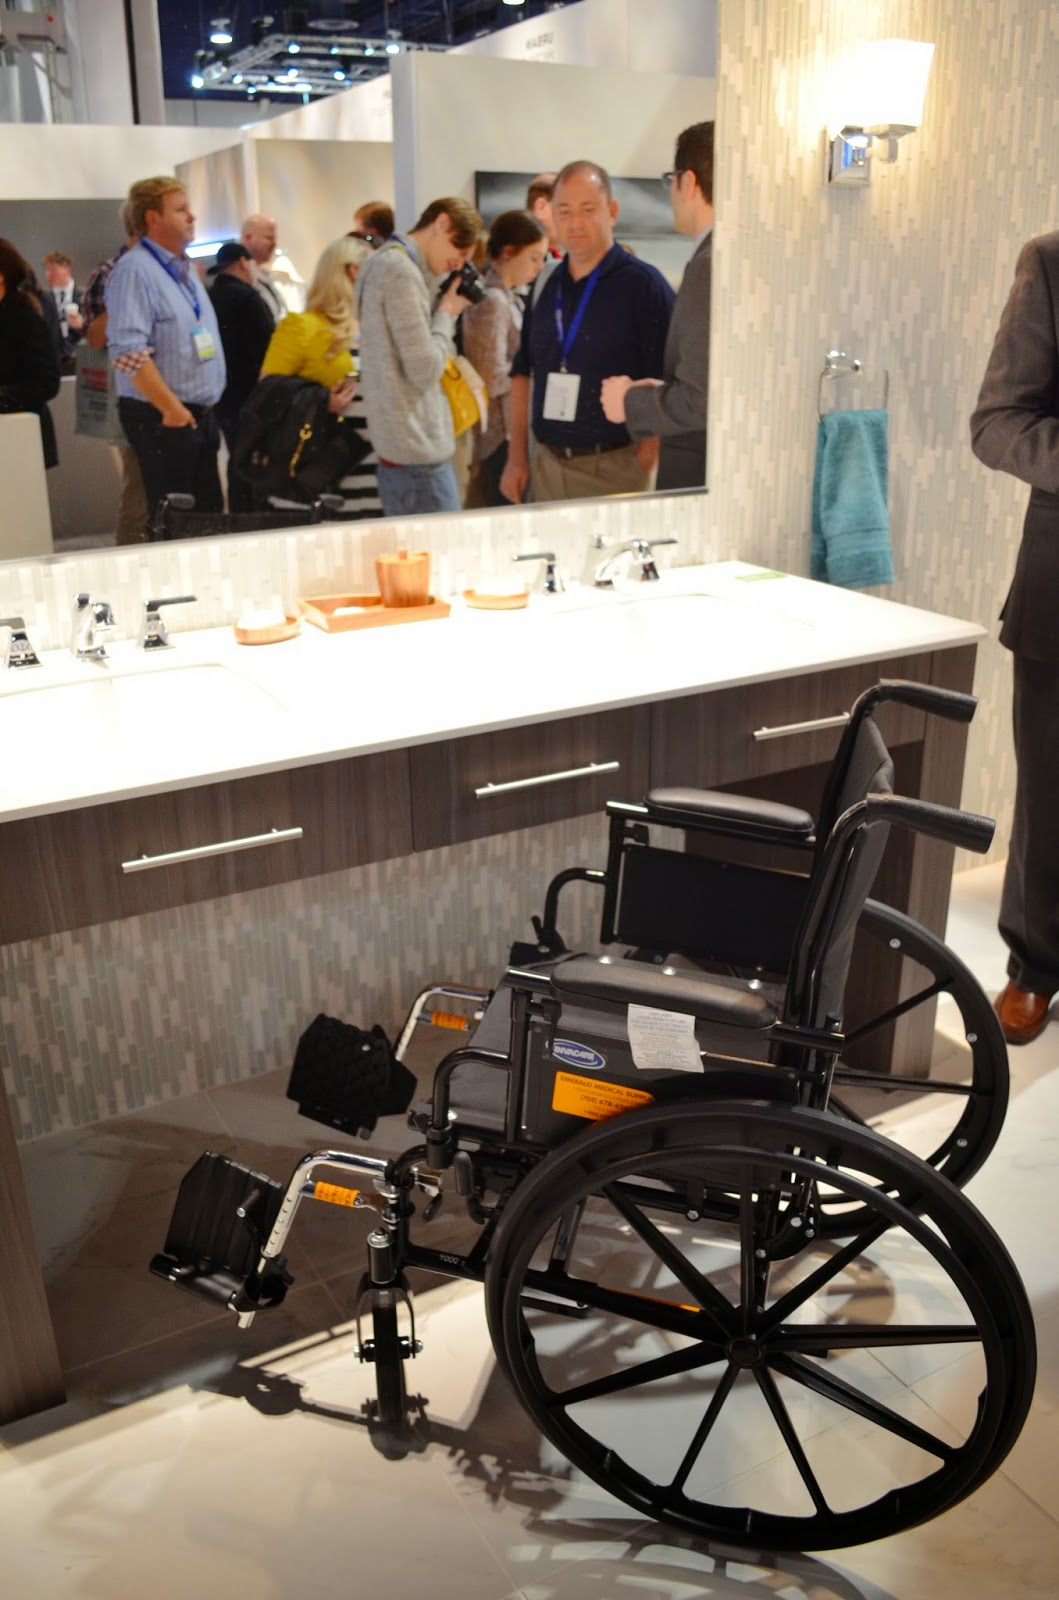 Vanity access for wheelchair - The Custom Vanity Was Mounted At Ada Height And The Shower Had No Threshold To Allow Someone In A Wheelchair Easy Access Which Works Beautifully For An